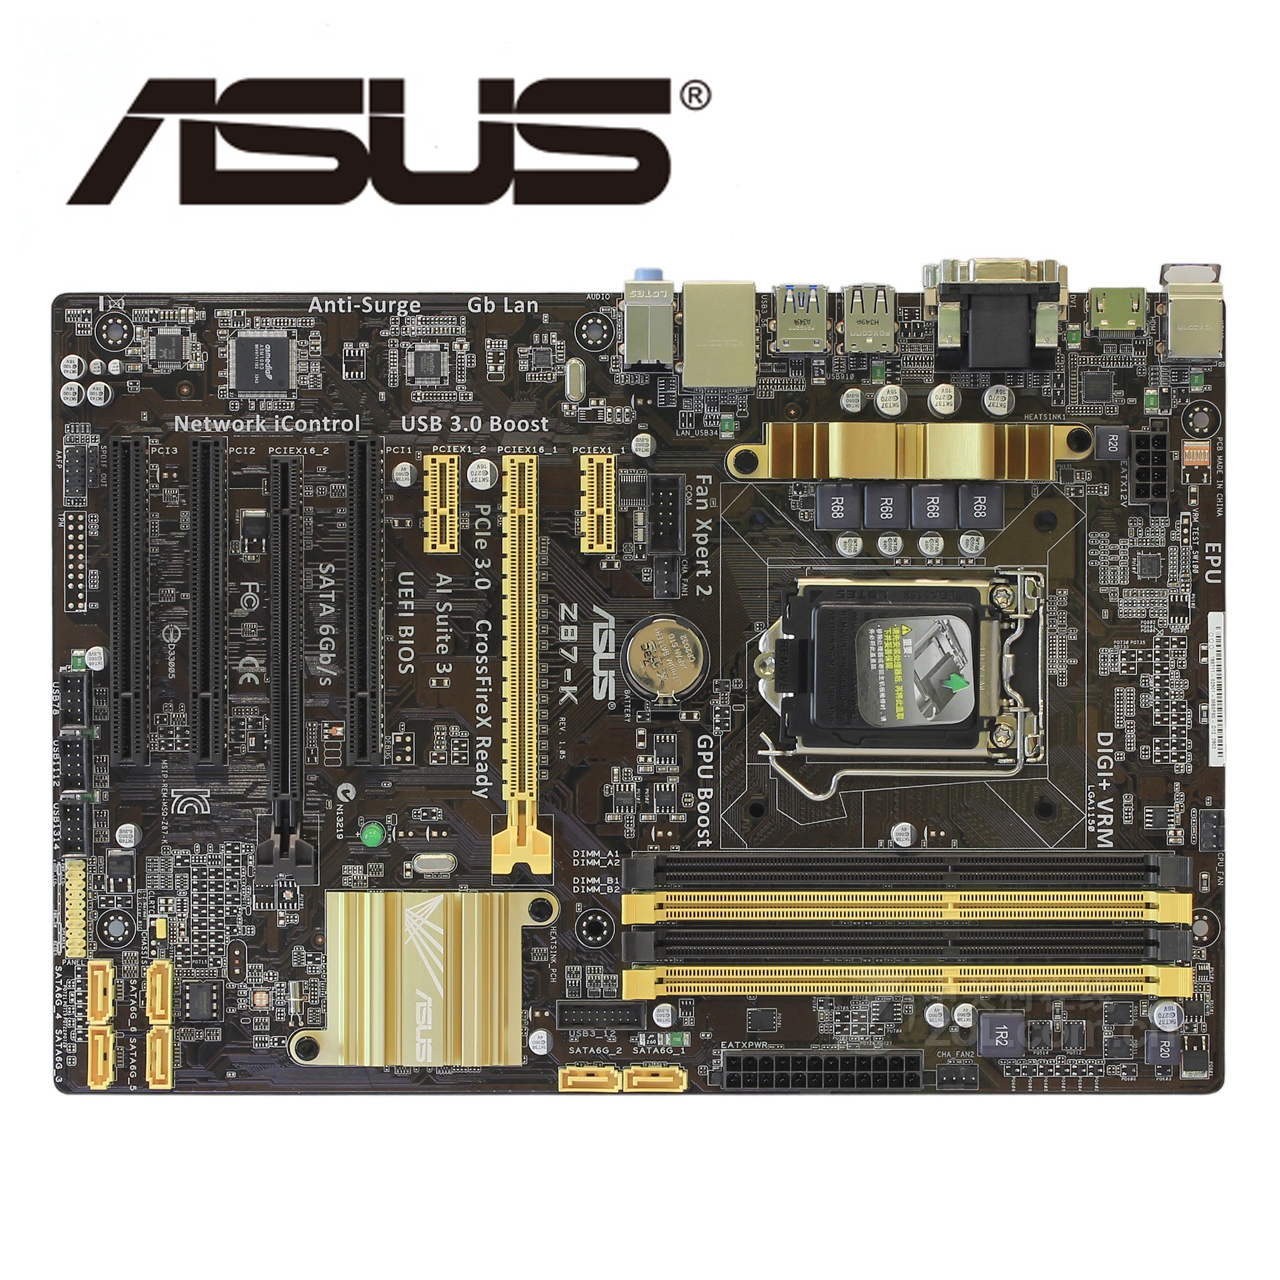 ASUS Z87-K ME DRIVER FOR WINDOWS MAC